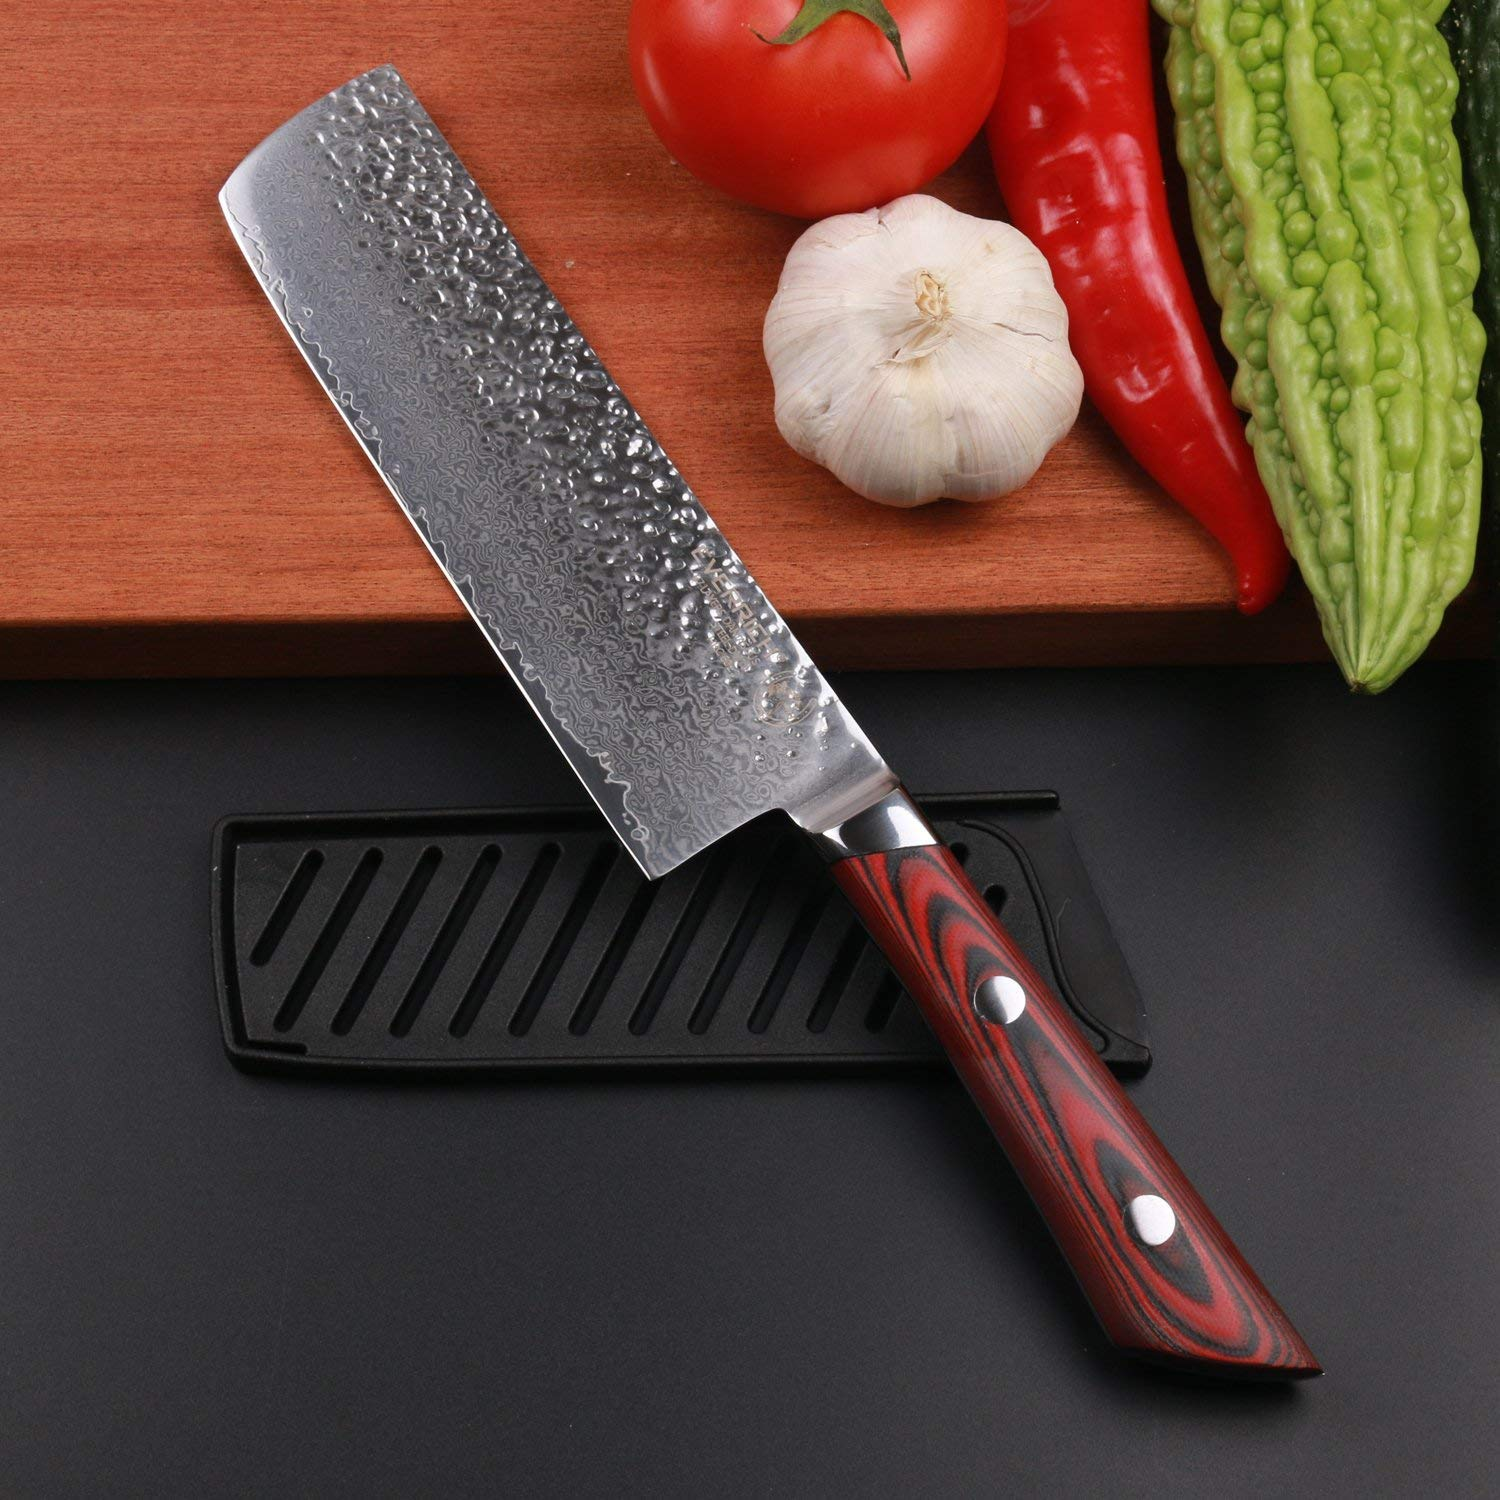 EVERRICH Nakiri Vegetable Knife 7 Inch Kitchen Knife Pro Chef Knife Cut Vegetables Cut Meat / Fish Fruits Chef Knife Japanese VG10 Damascus Steel Finish Beauty Box W/Guard by EVERRICH